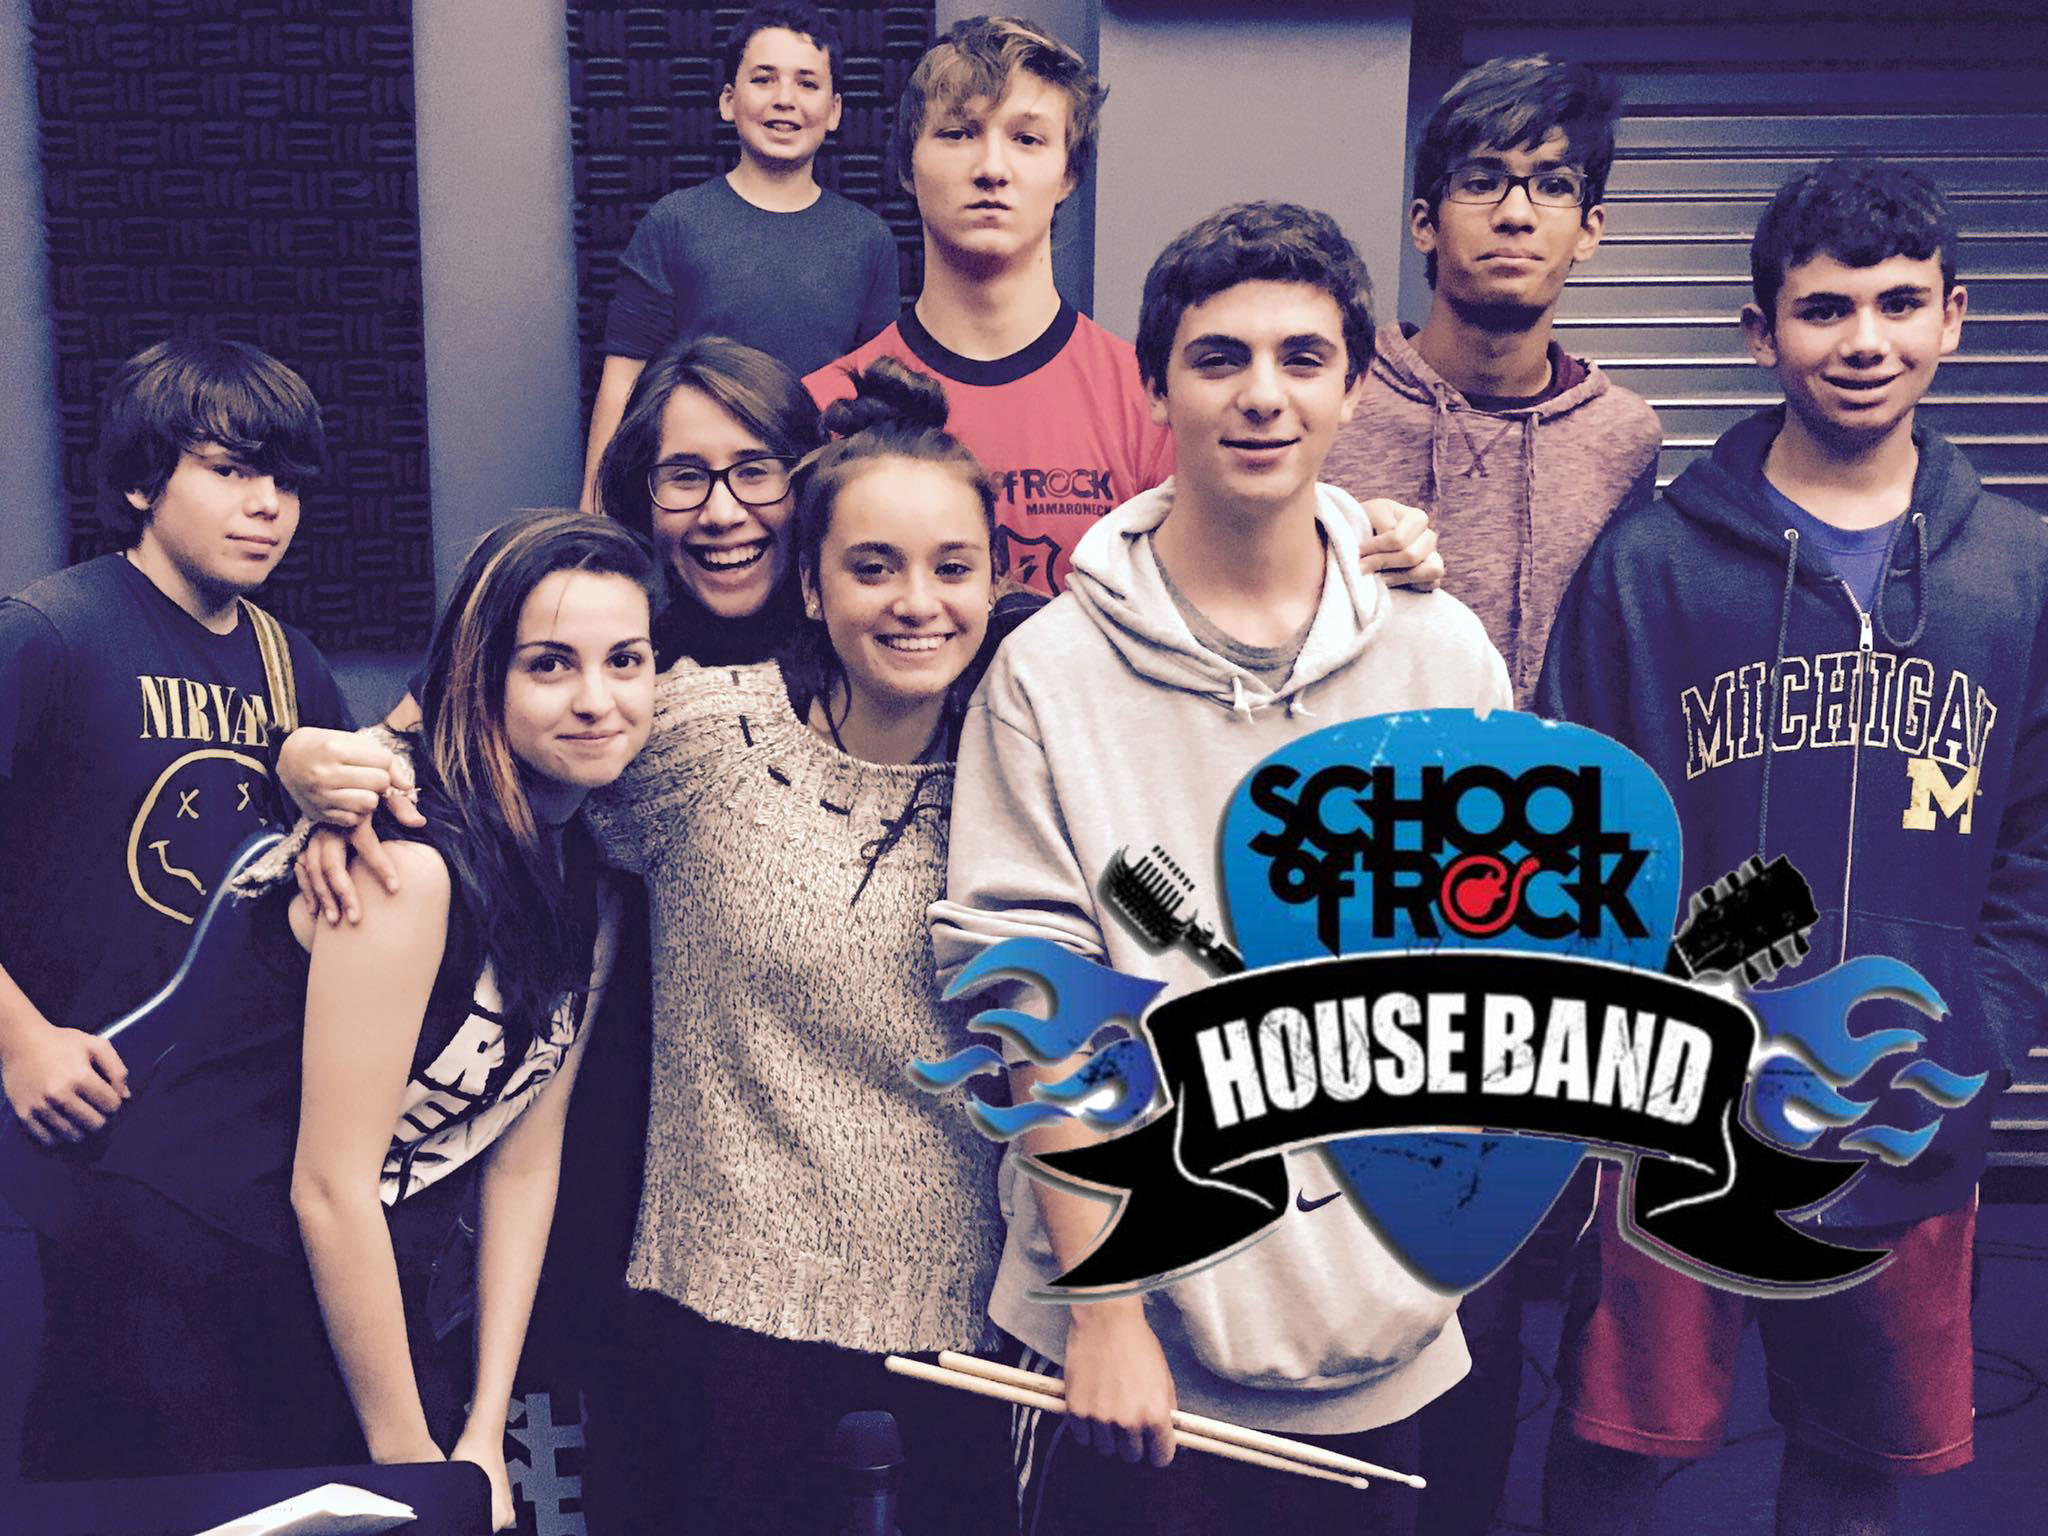 Image of Student Houseband